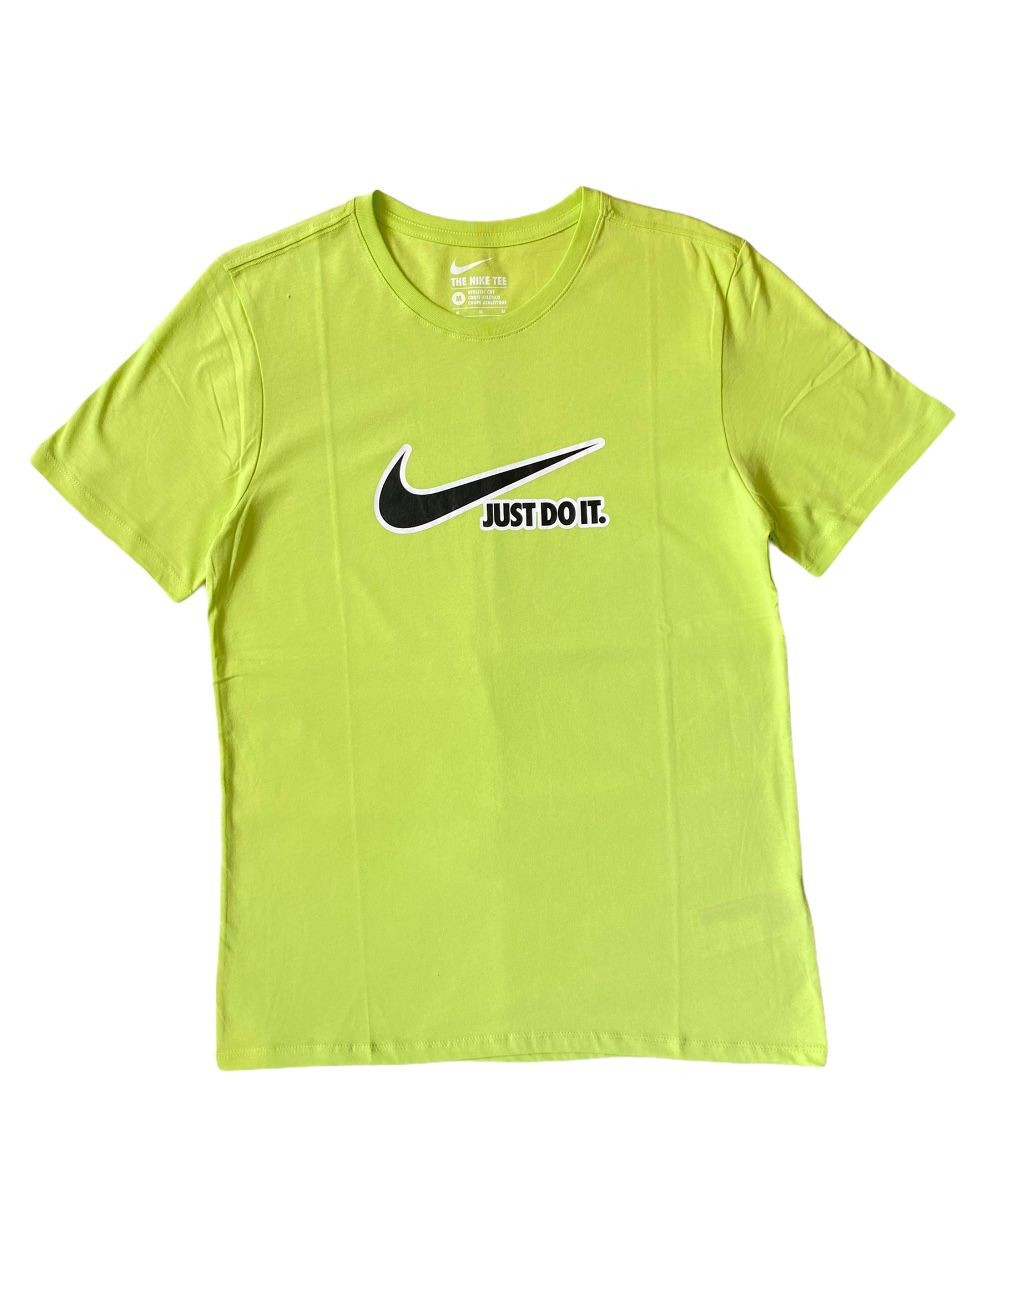 N. Just Do It Neon T Shirt